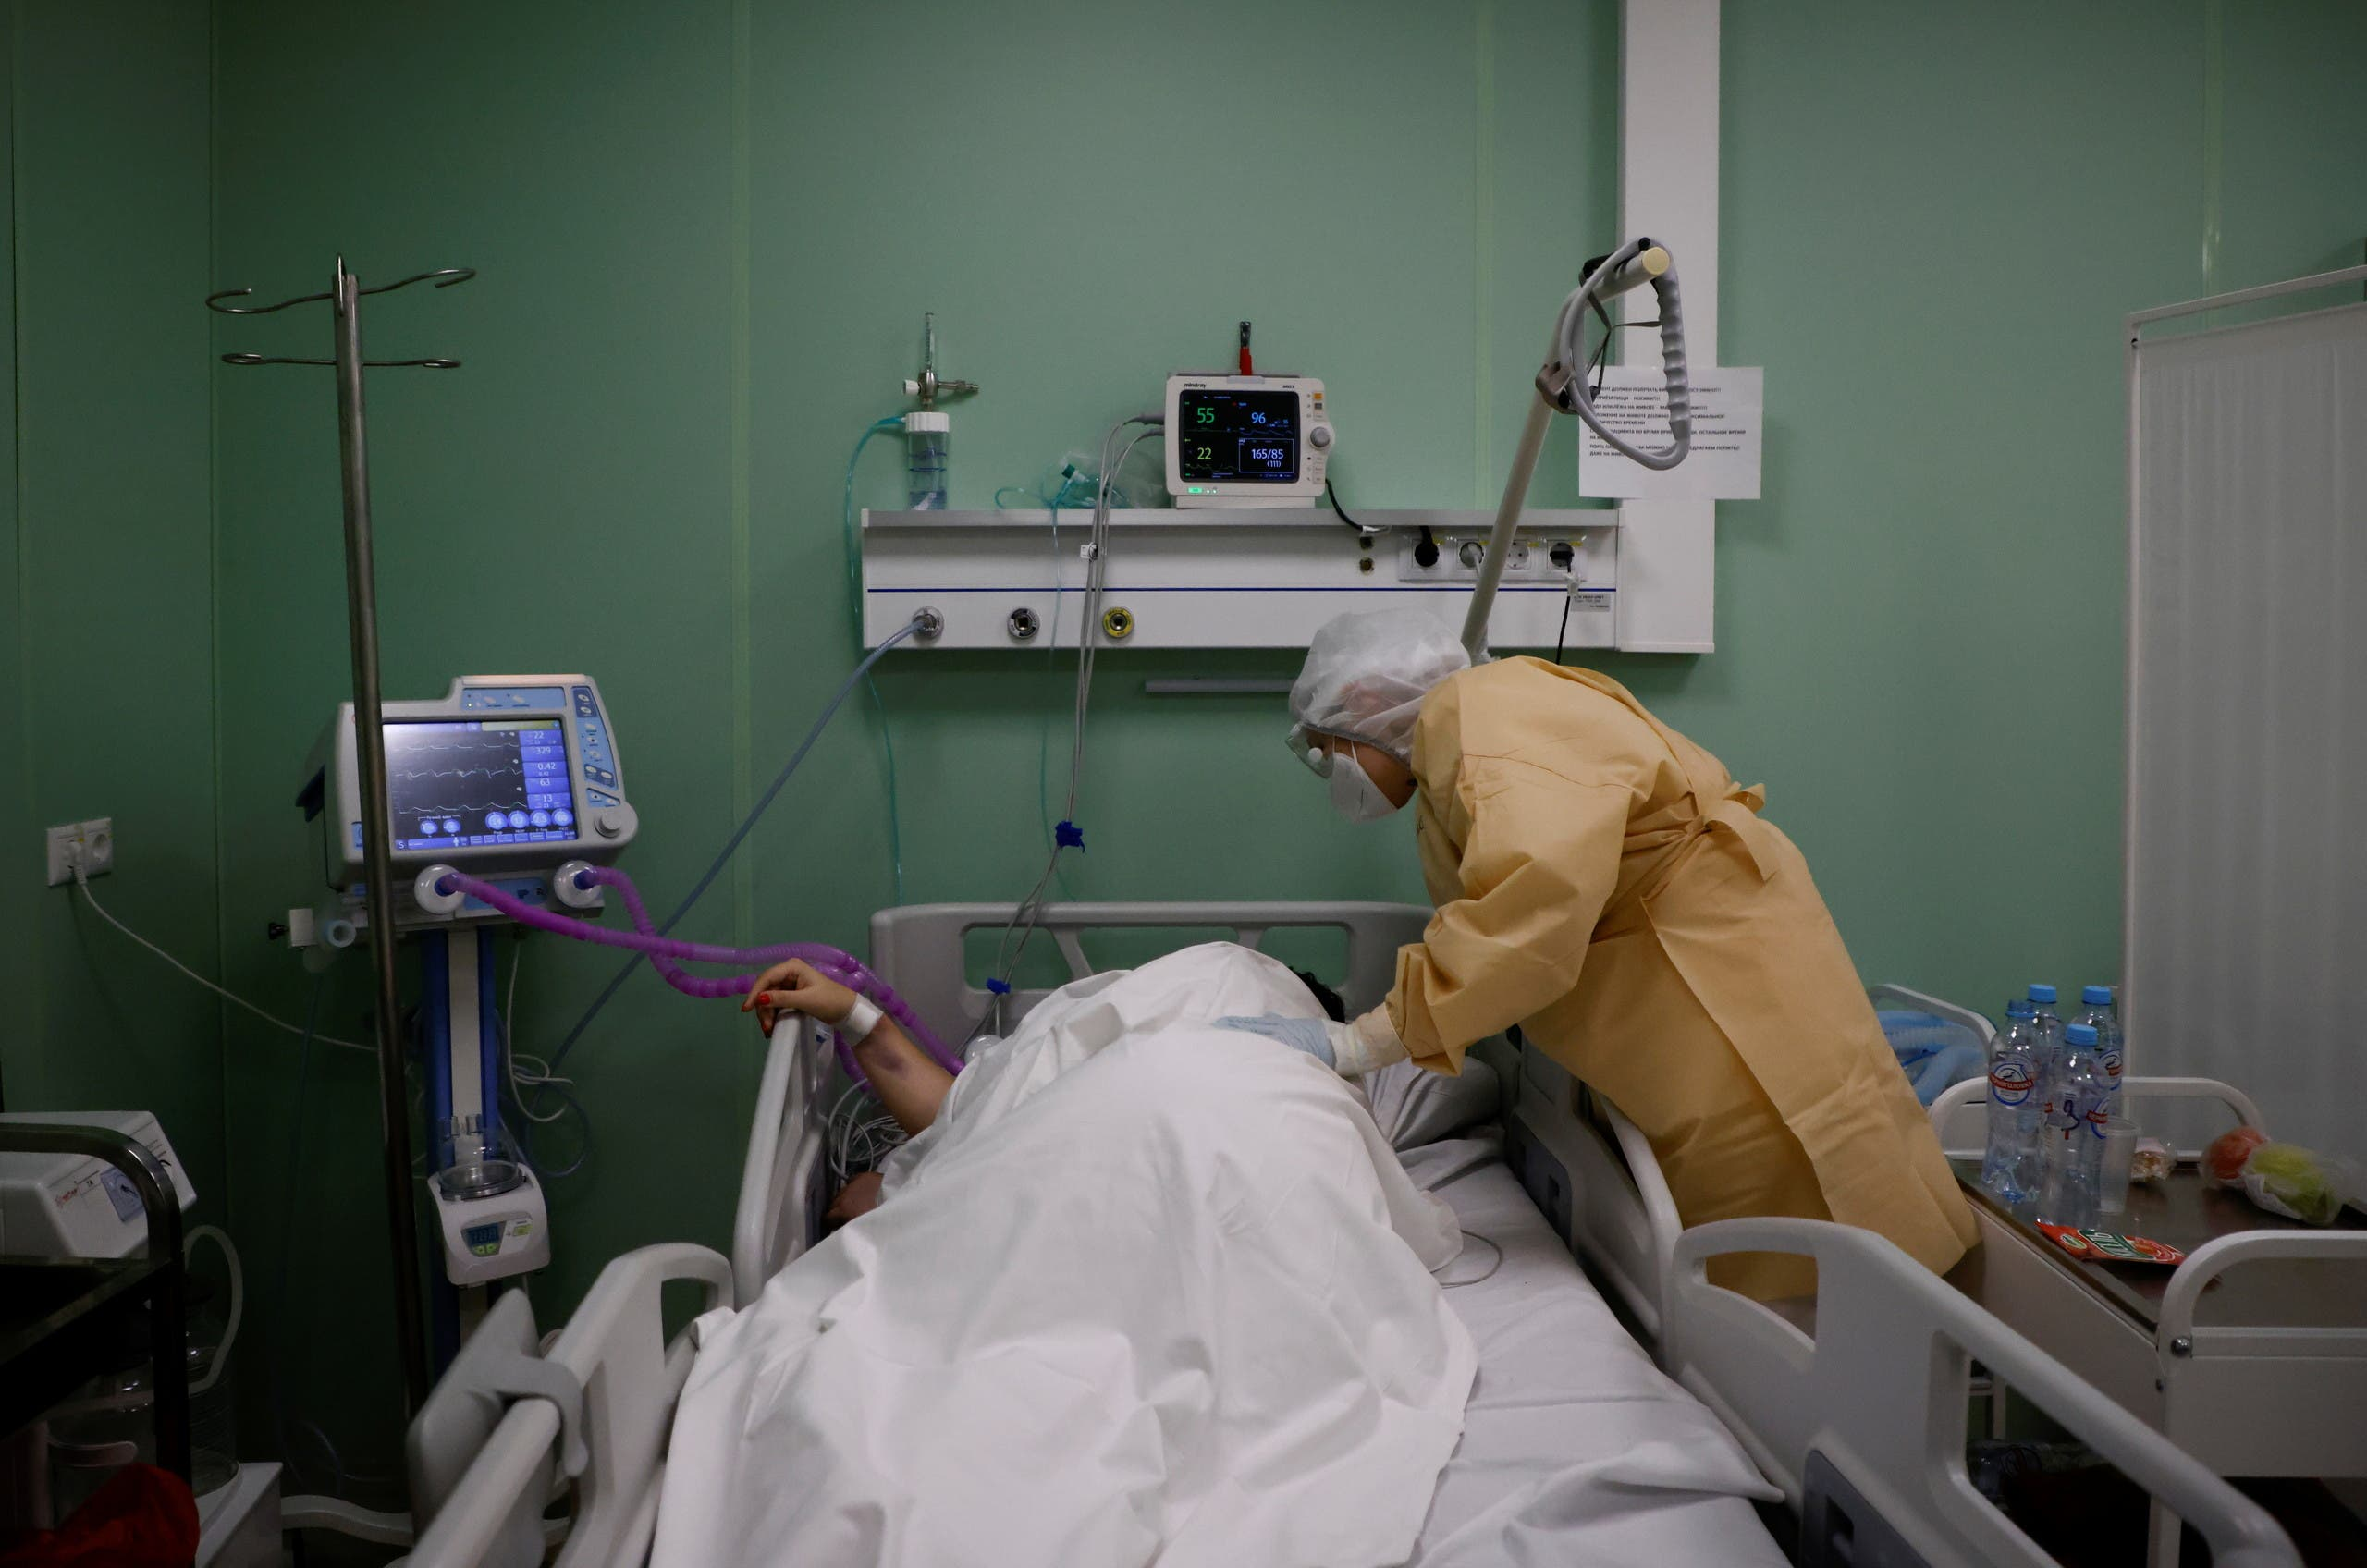 A patient receives medical assistance in a temporary intensive care unit inside a pavilion of the Exhibition of Achievements of National Economy (VDNH) in Moscow, Russia on November 17, 2020. (Reuters)